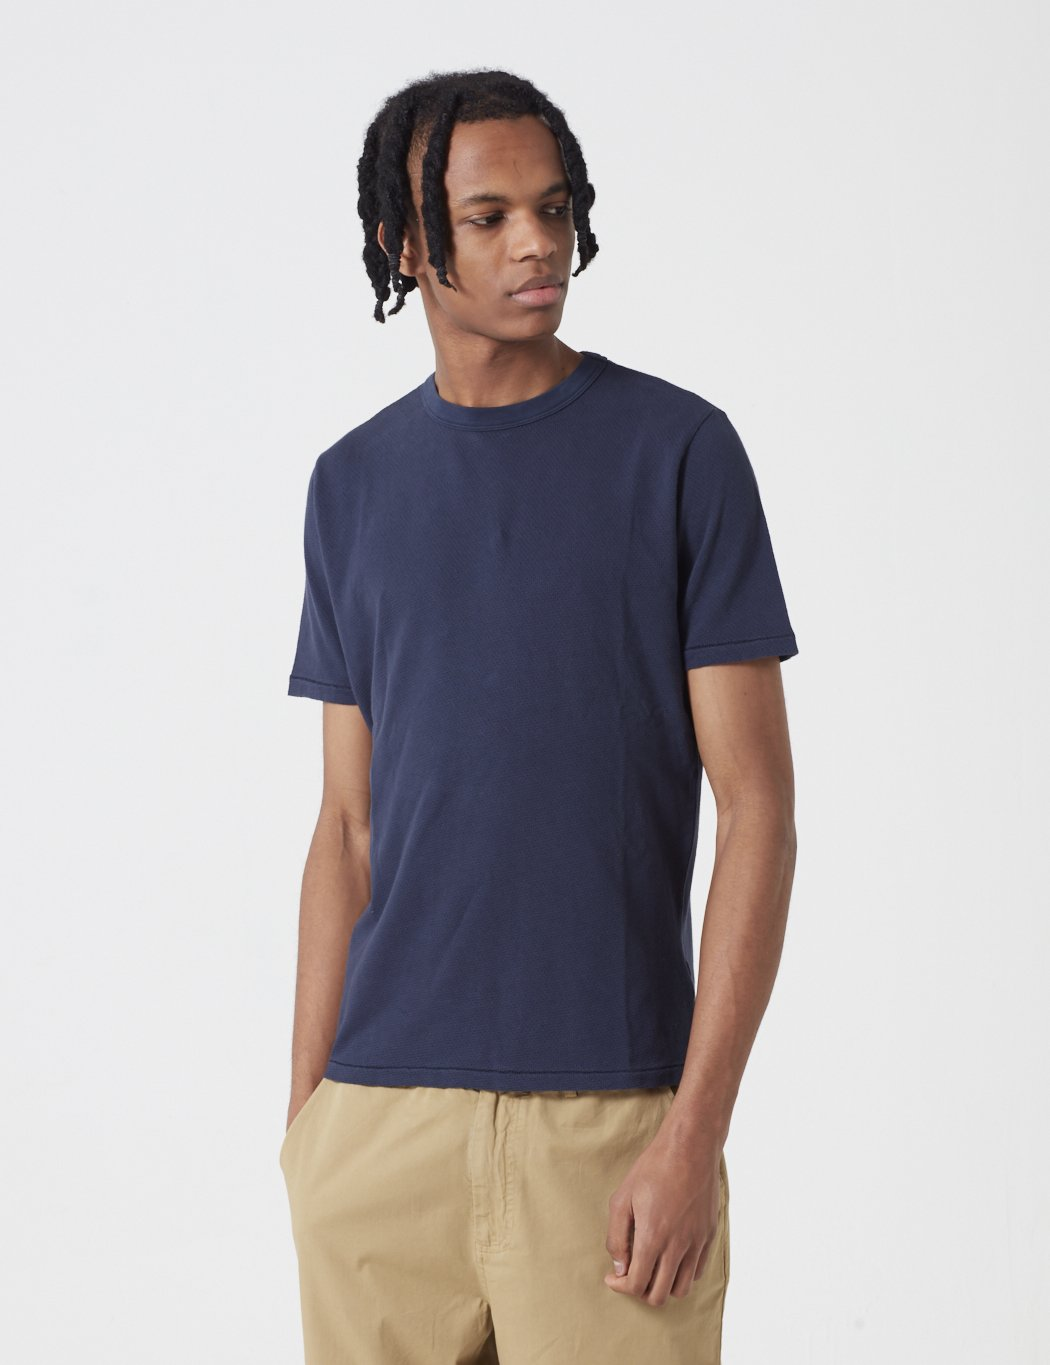 Les Basics Le Crew T-Shirt - Navy Blue